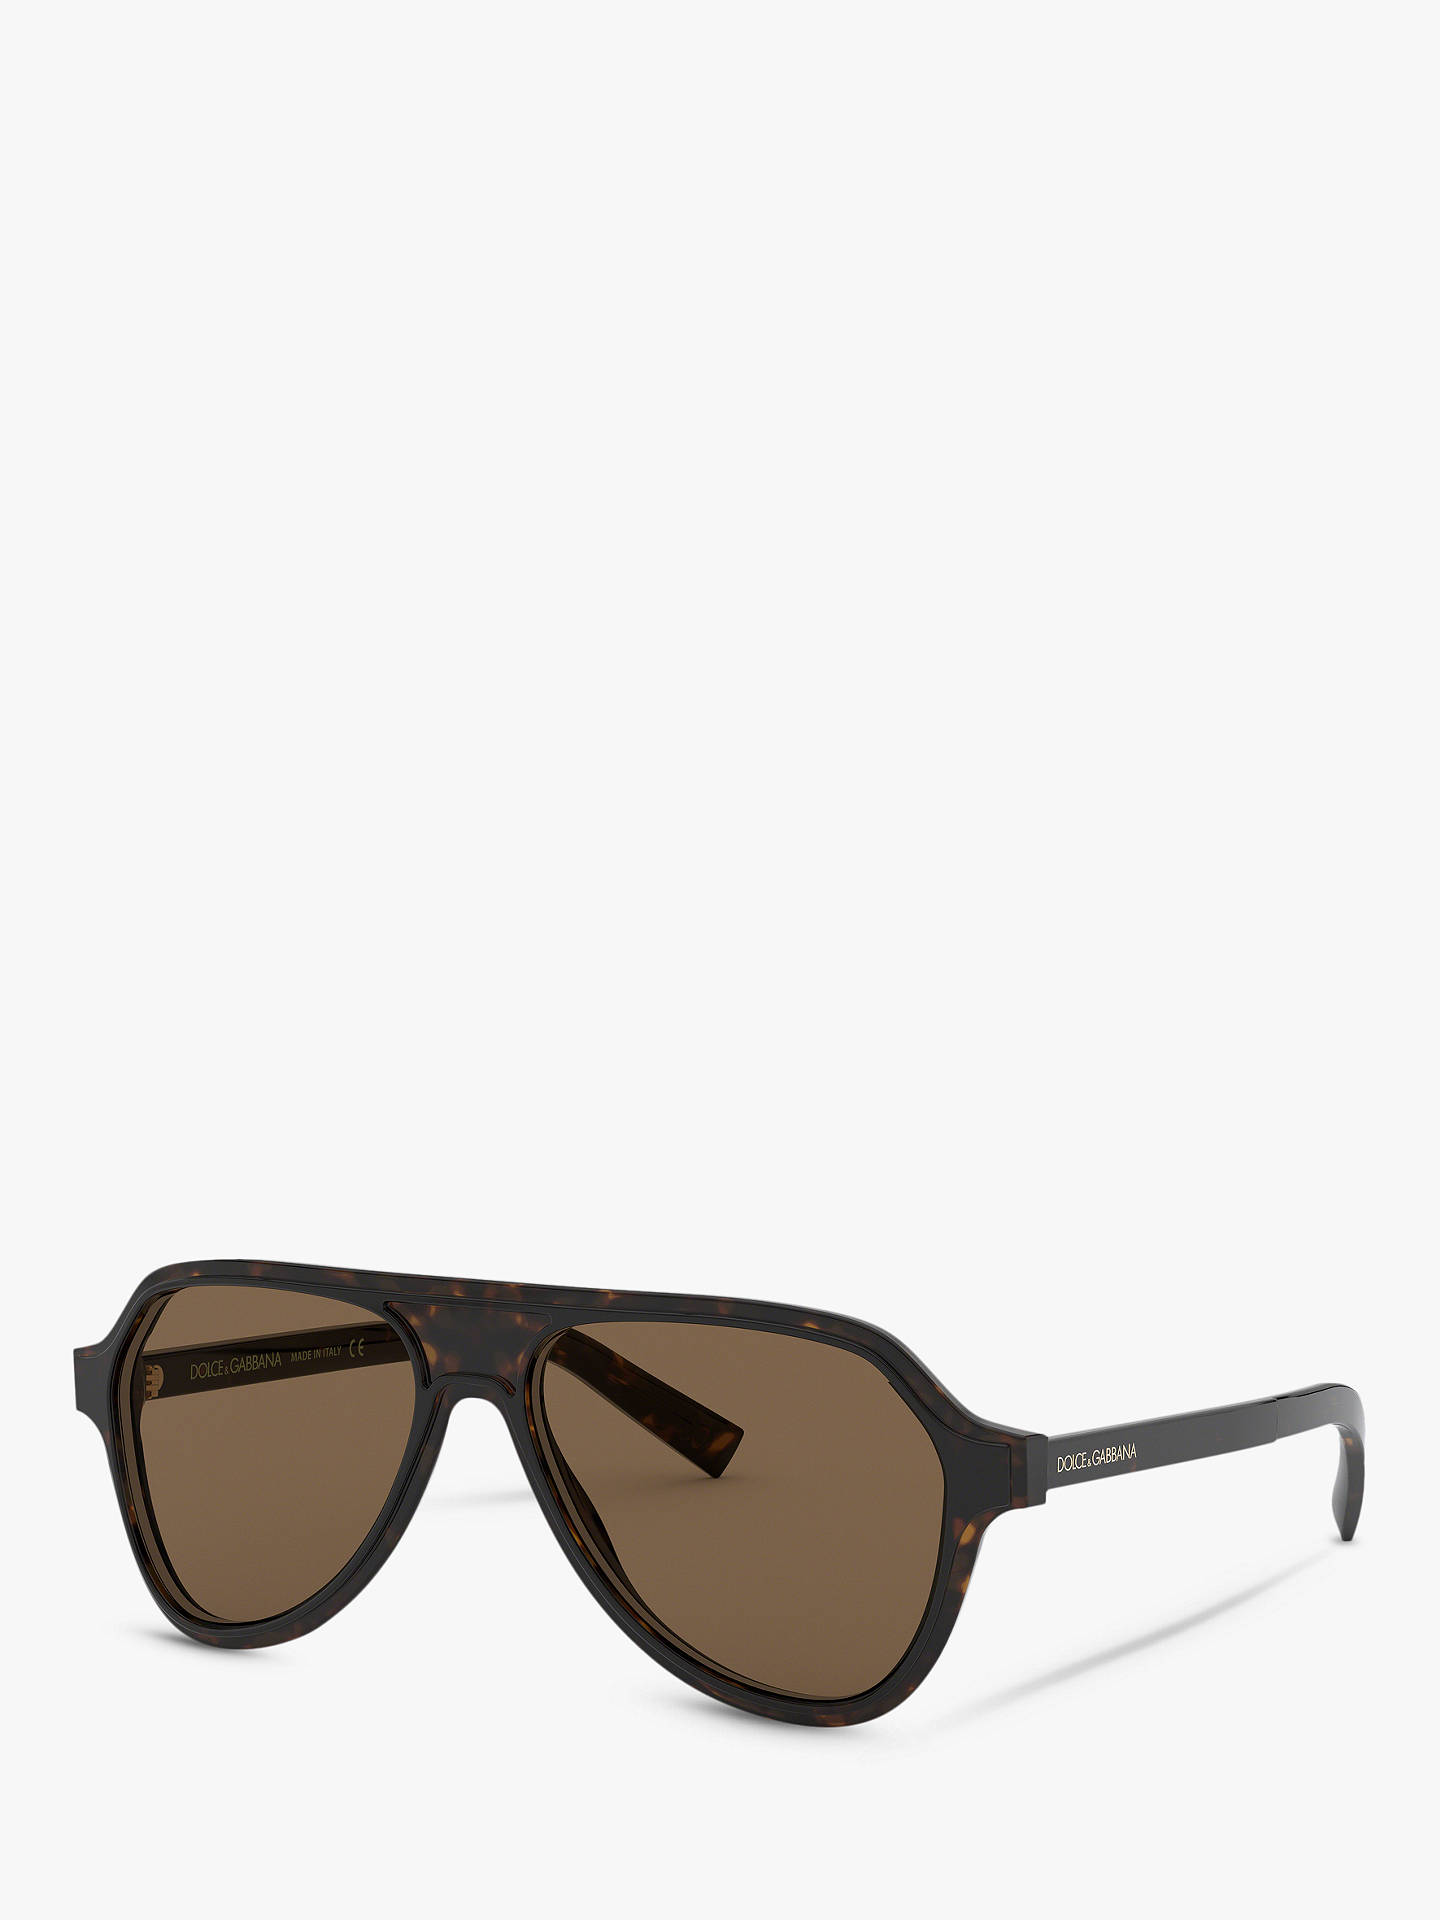 caa601500a17 Dolce   Gabbana DG4355 Women s Aviator Sunglasses at John Lewis ...